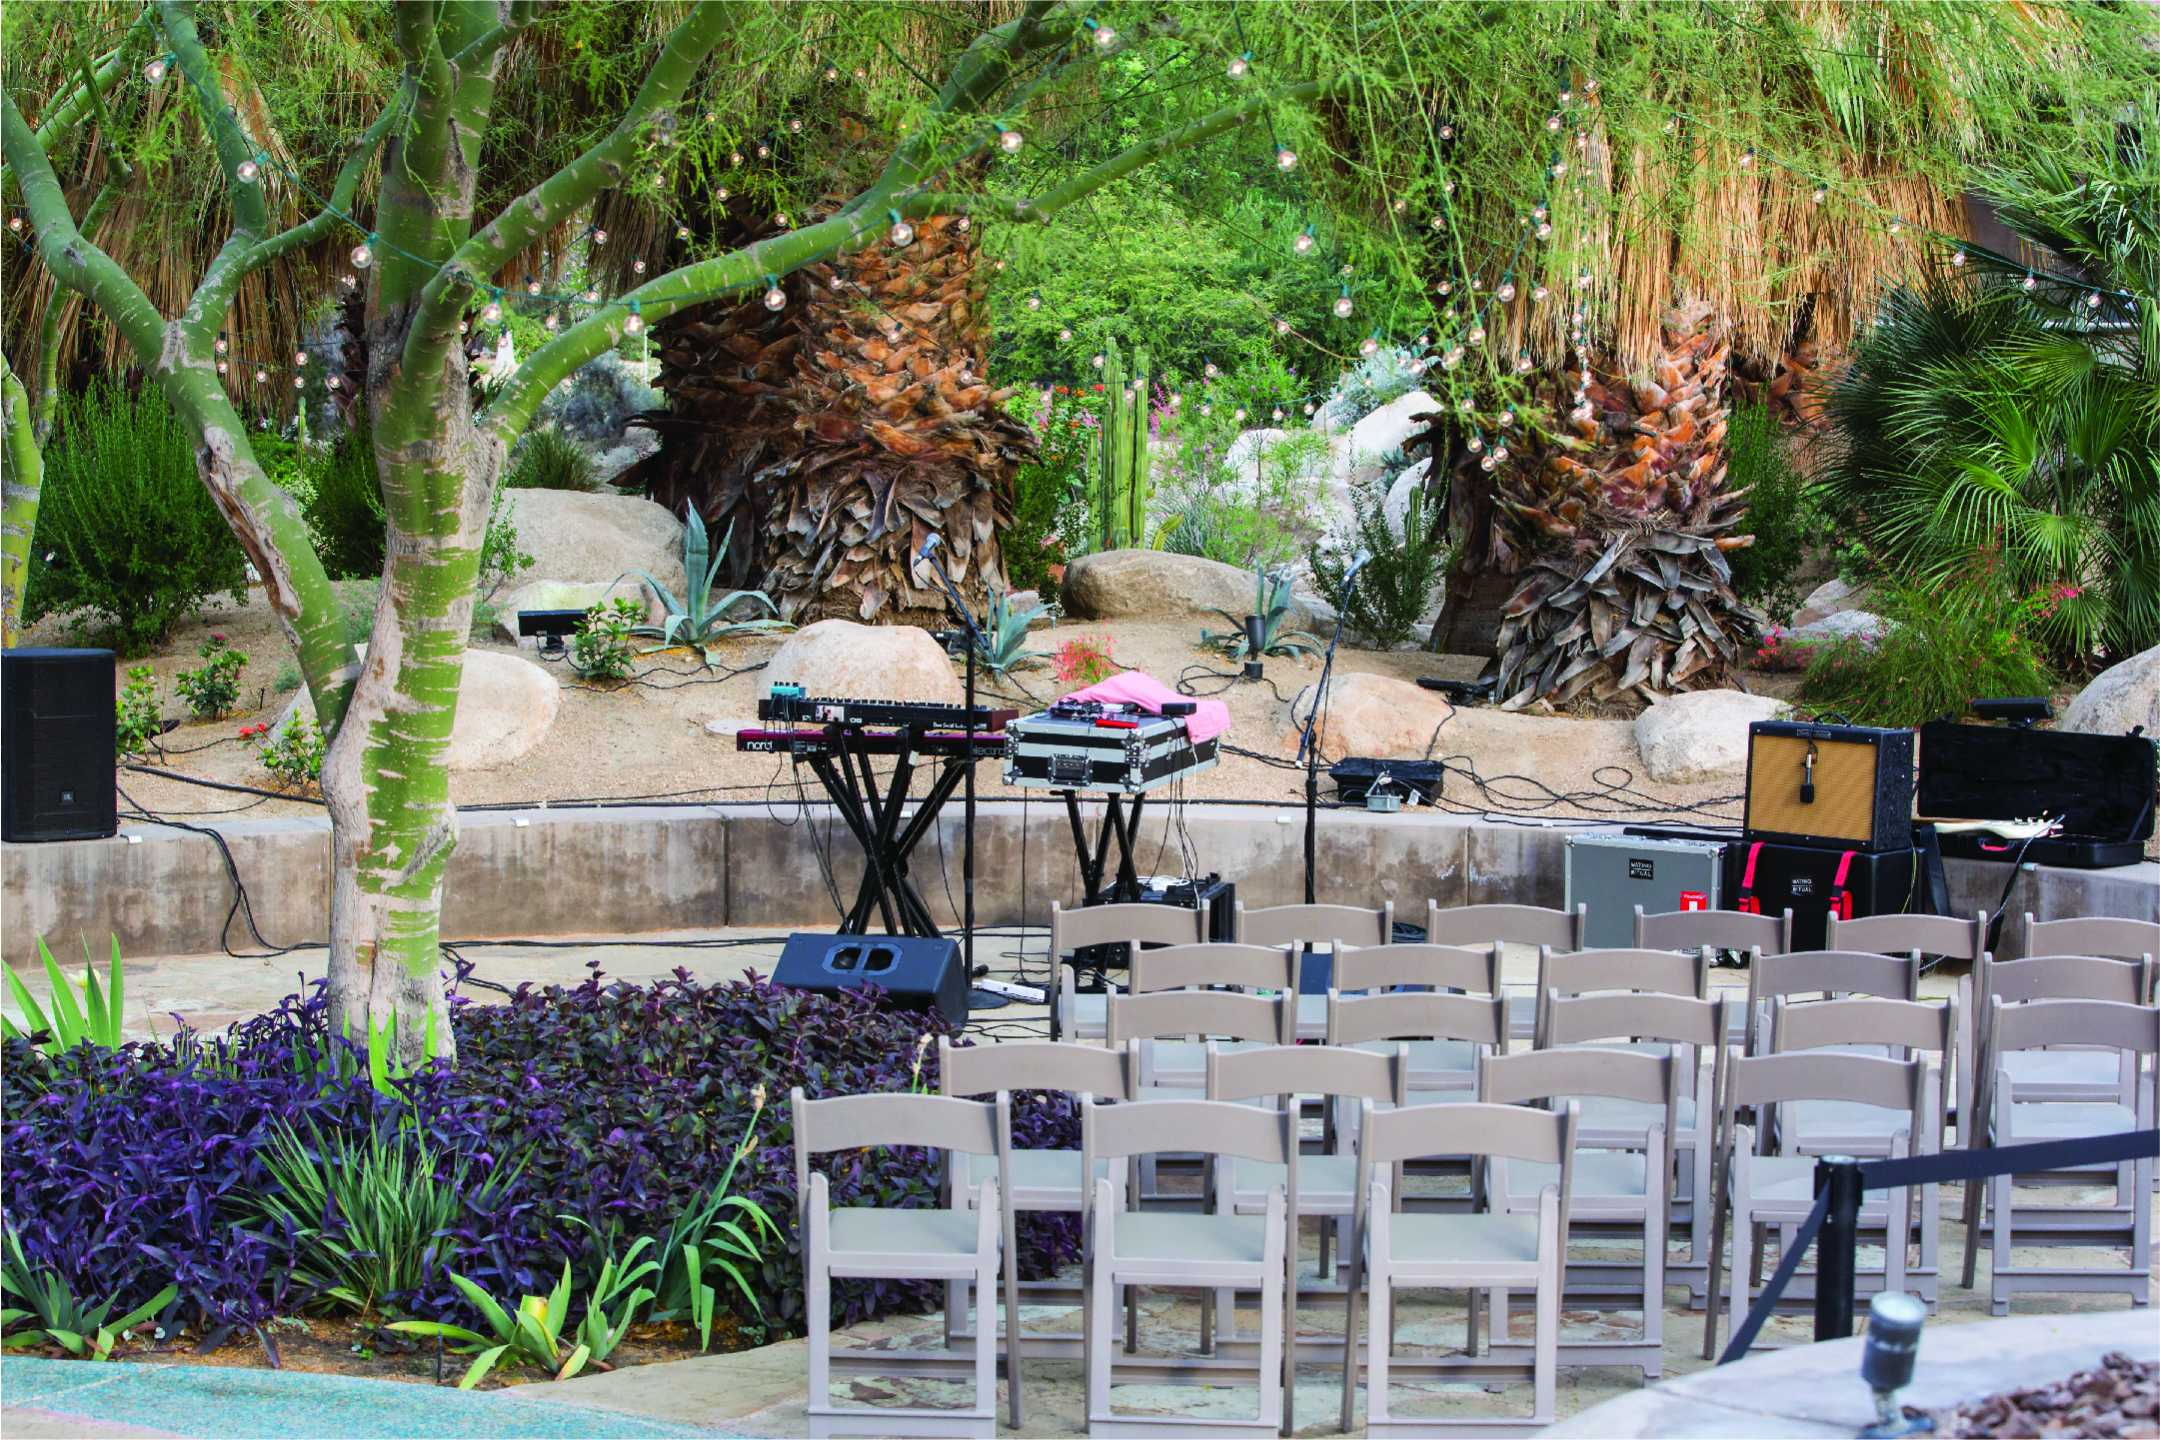 Venue rental at the Palm Springs Art Museum